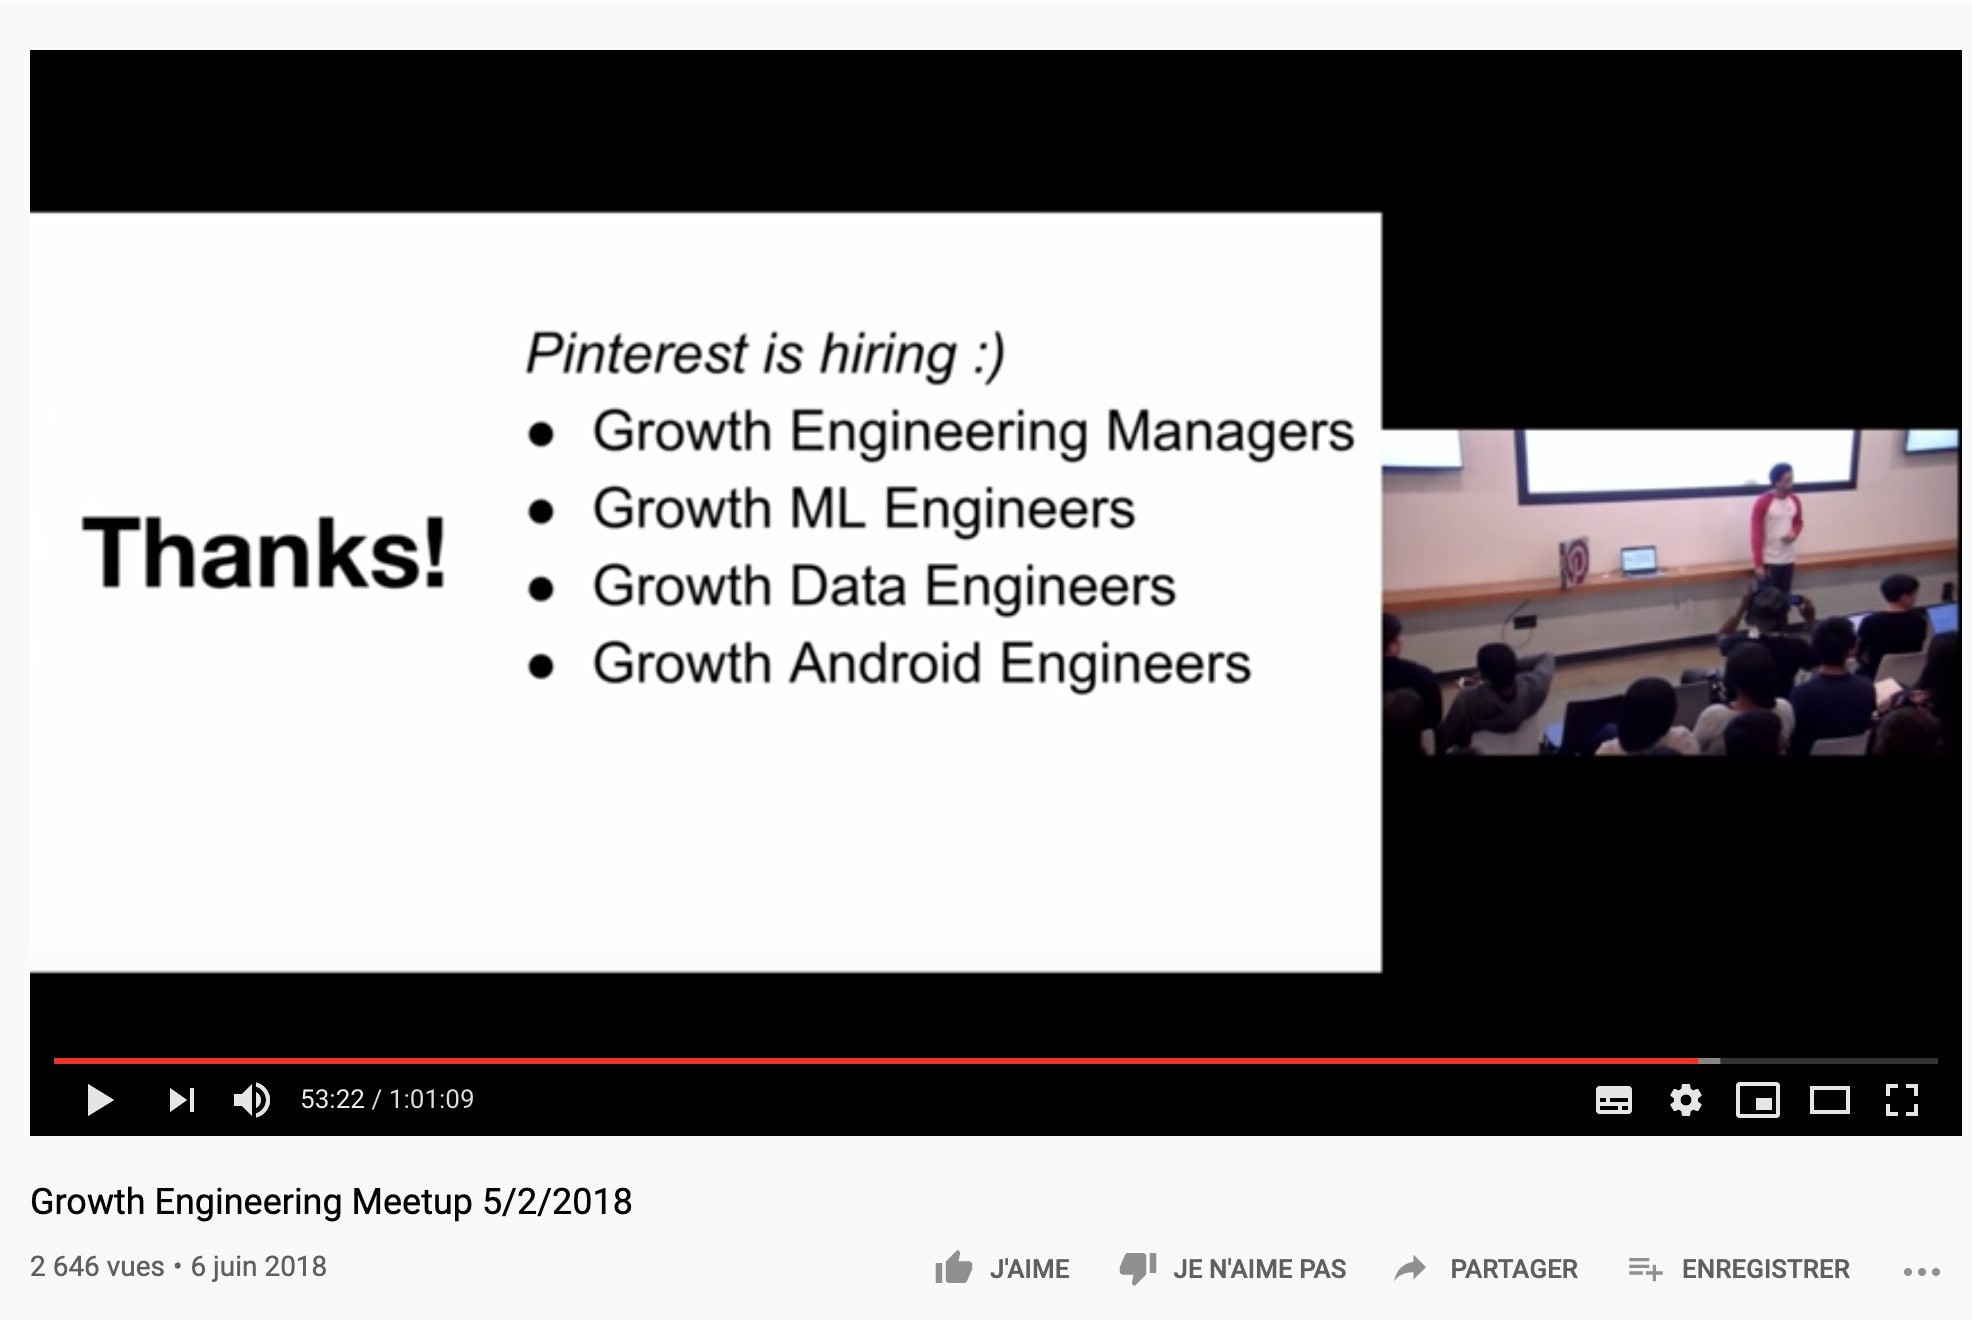 Le Growth Engineering Chez Pinterest